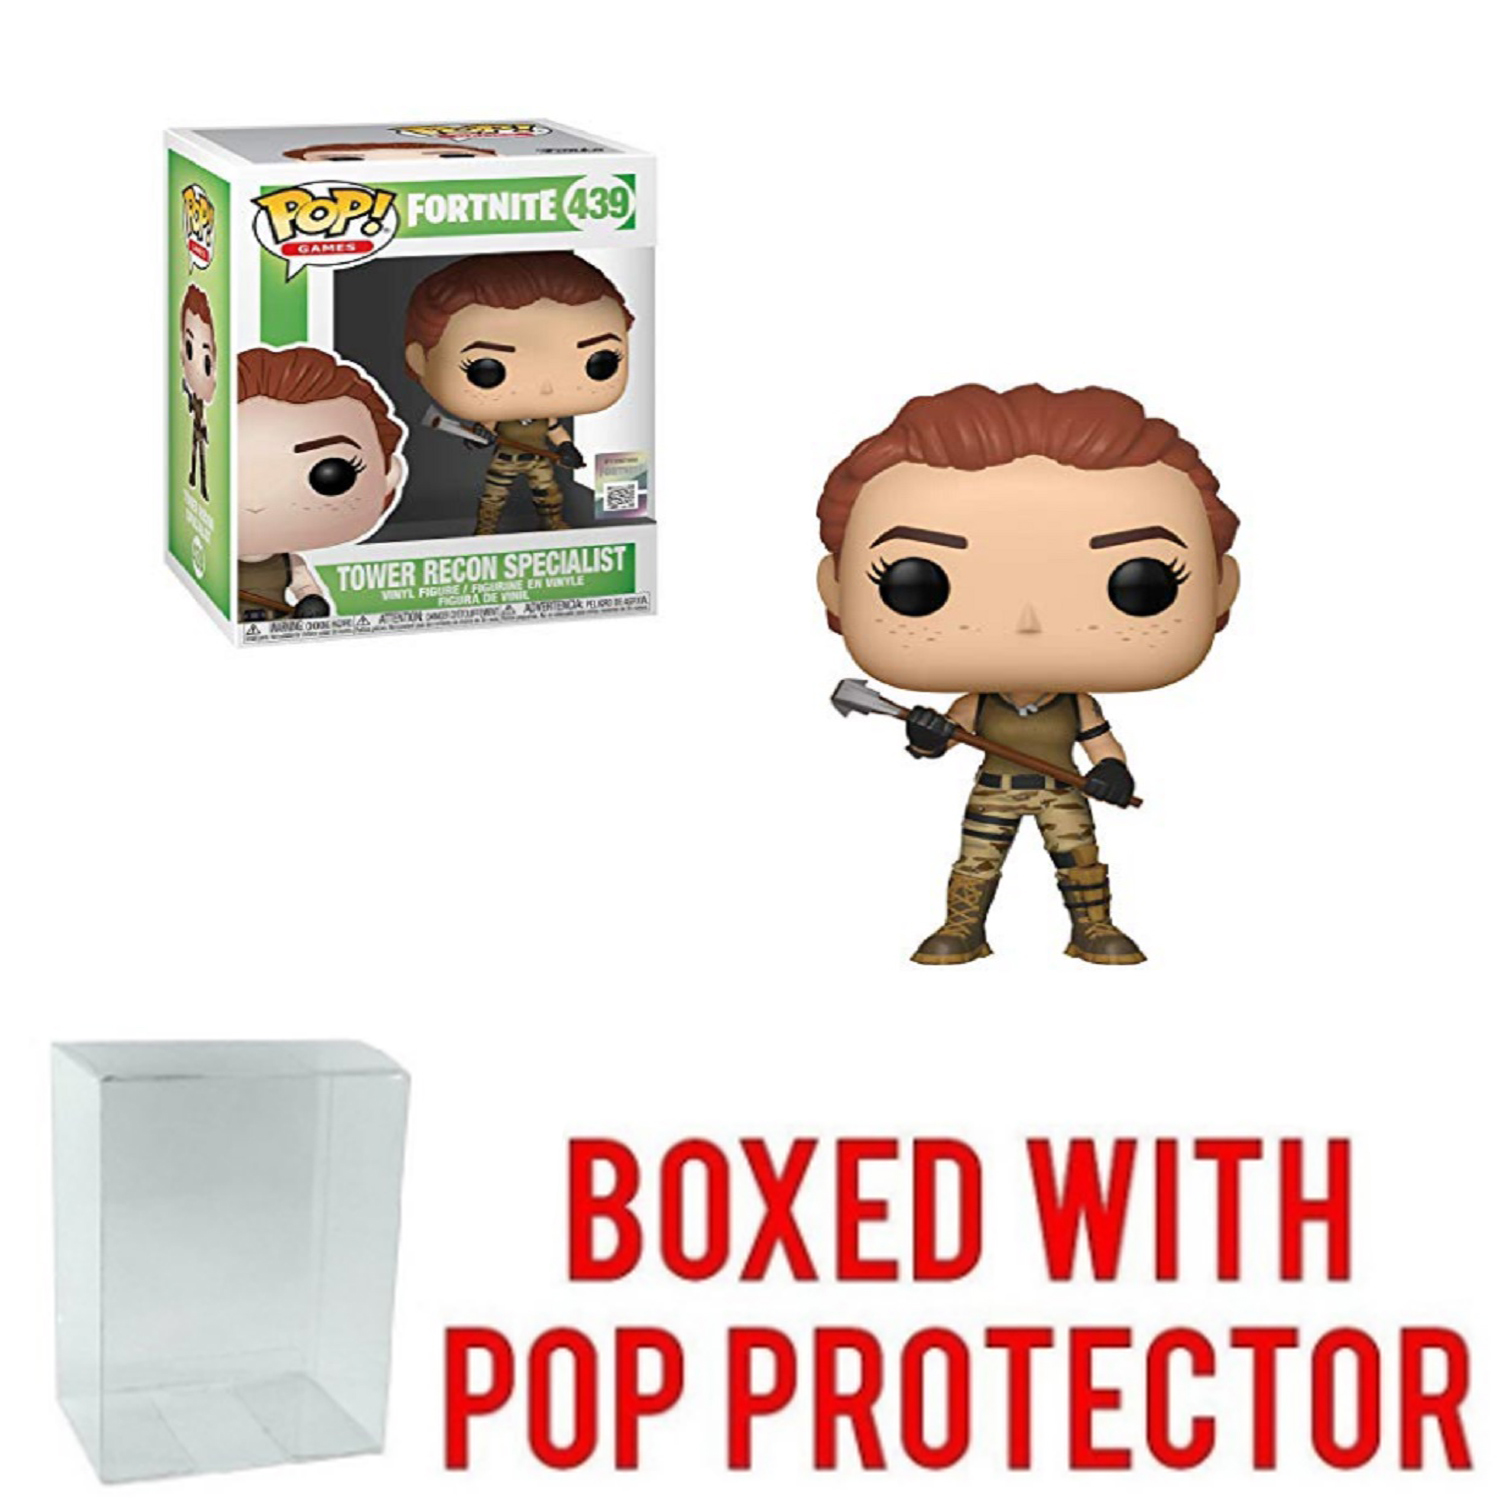 Funko POP - Fortnite - Tower Recon Specialist - with Pop Protector